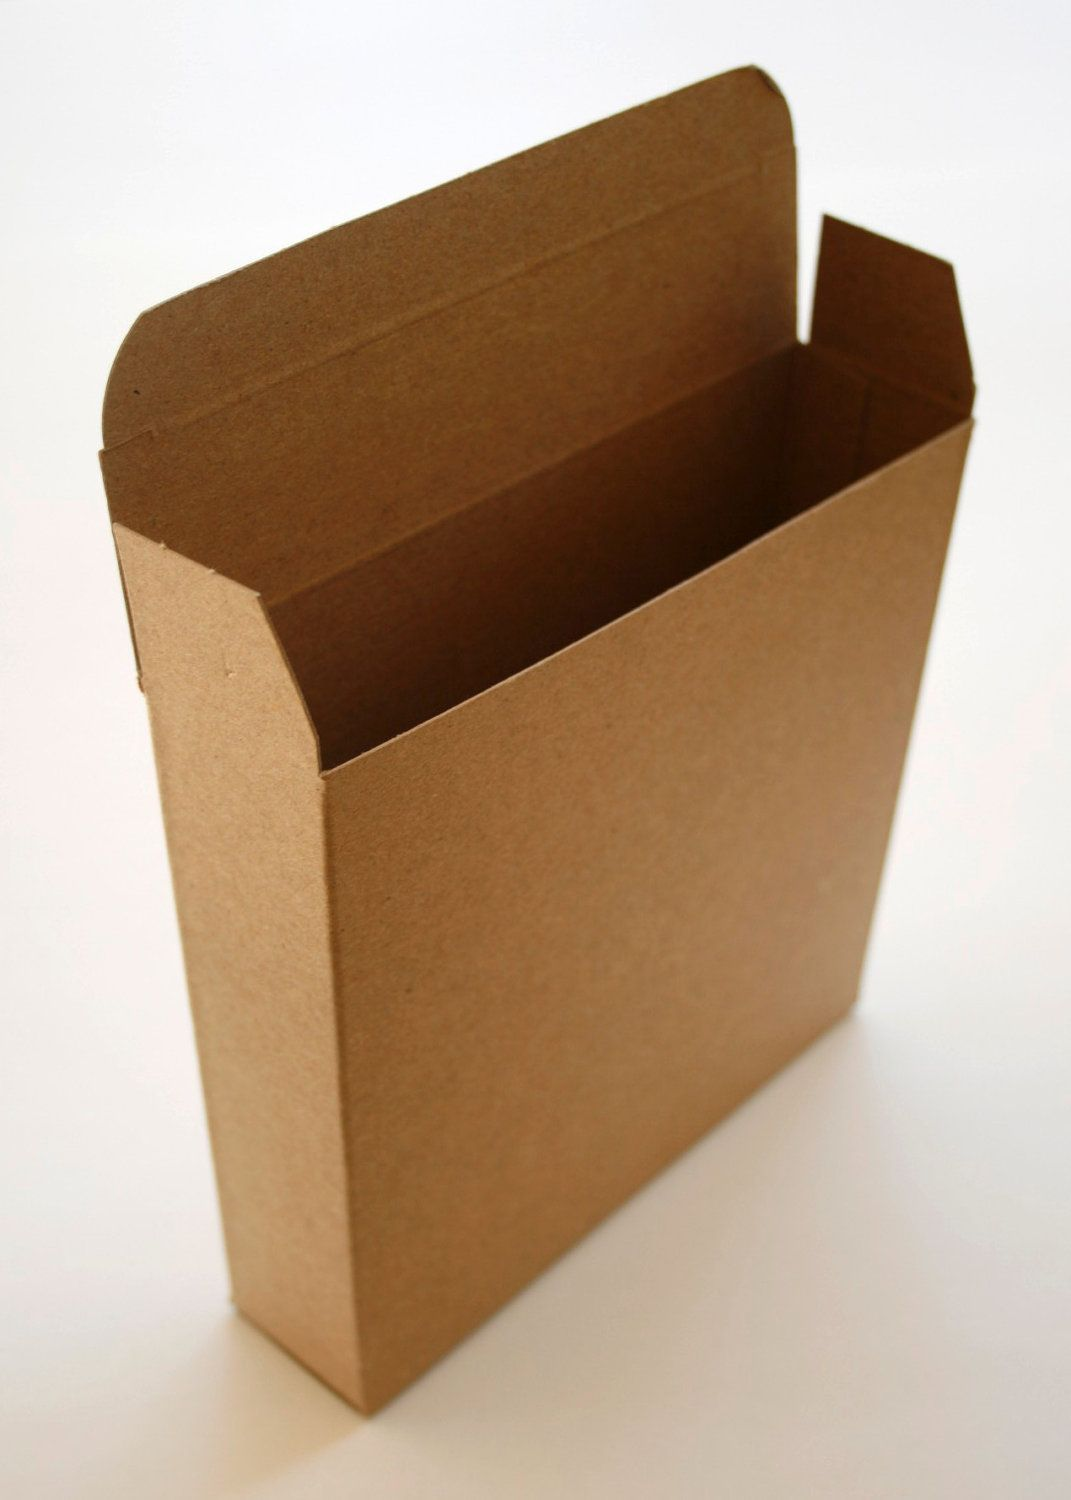 Brown Kraft Boxes DIY - set of 30 - Perfect with Twine or Deco Tape - Packaging - 6 x 1.5 x 6 Inches. $16.25, via Etsy.